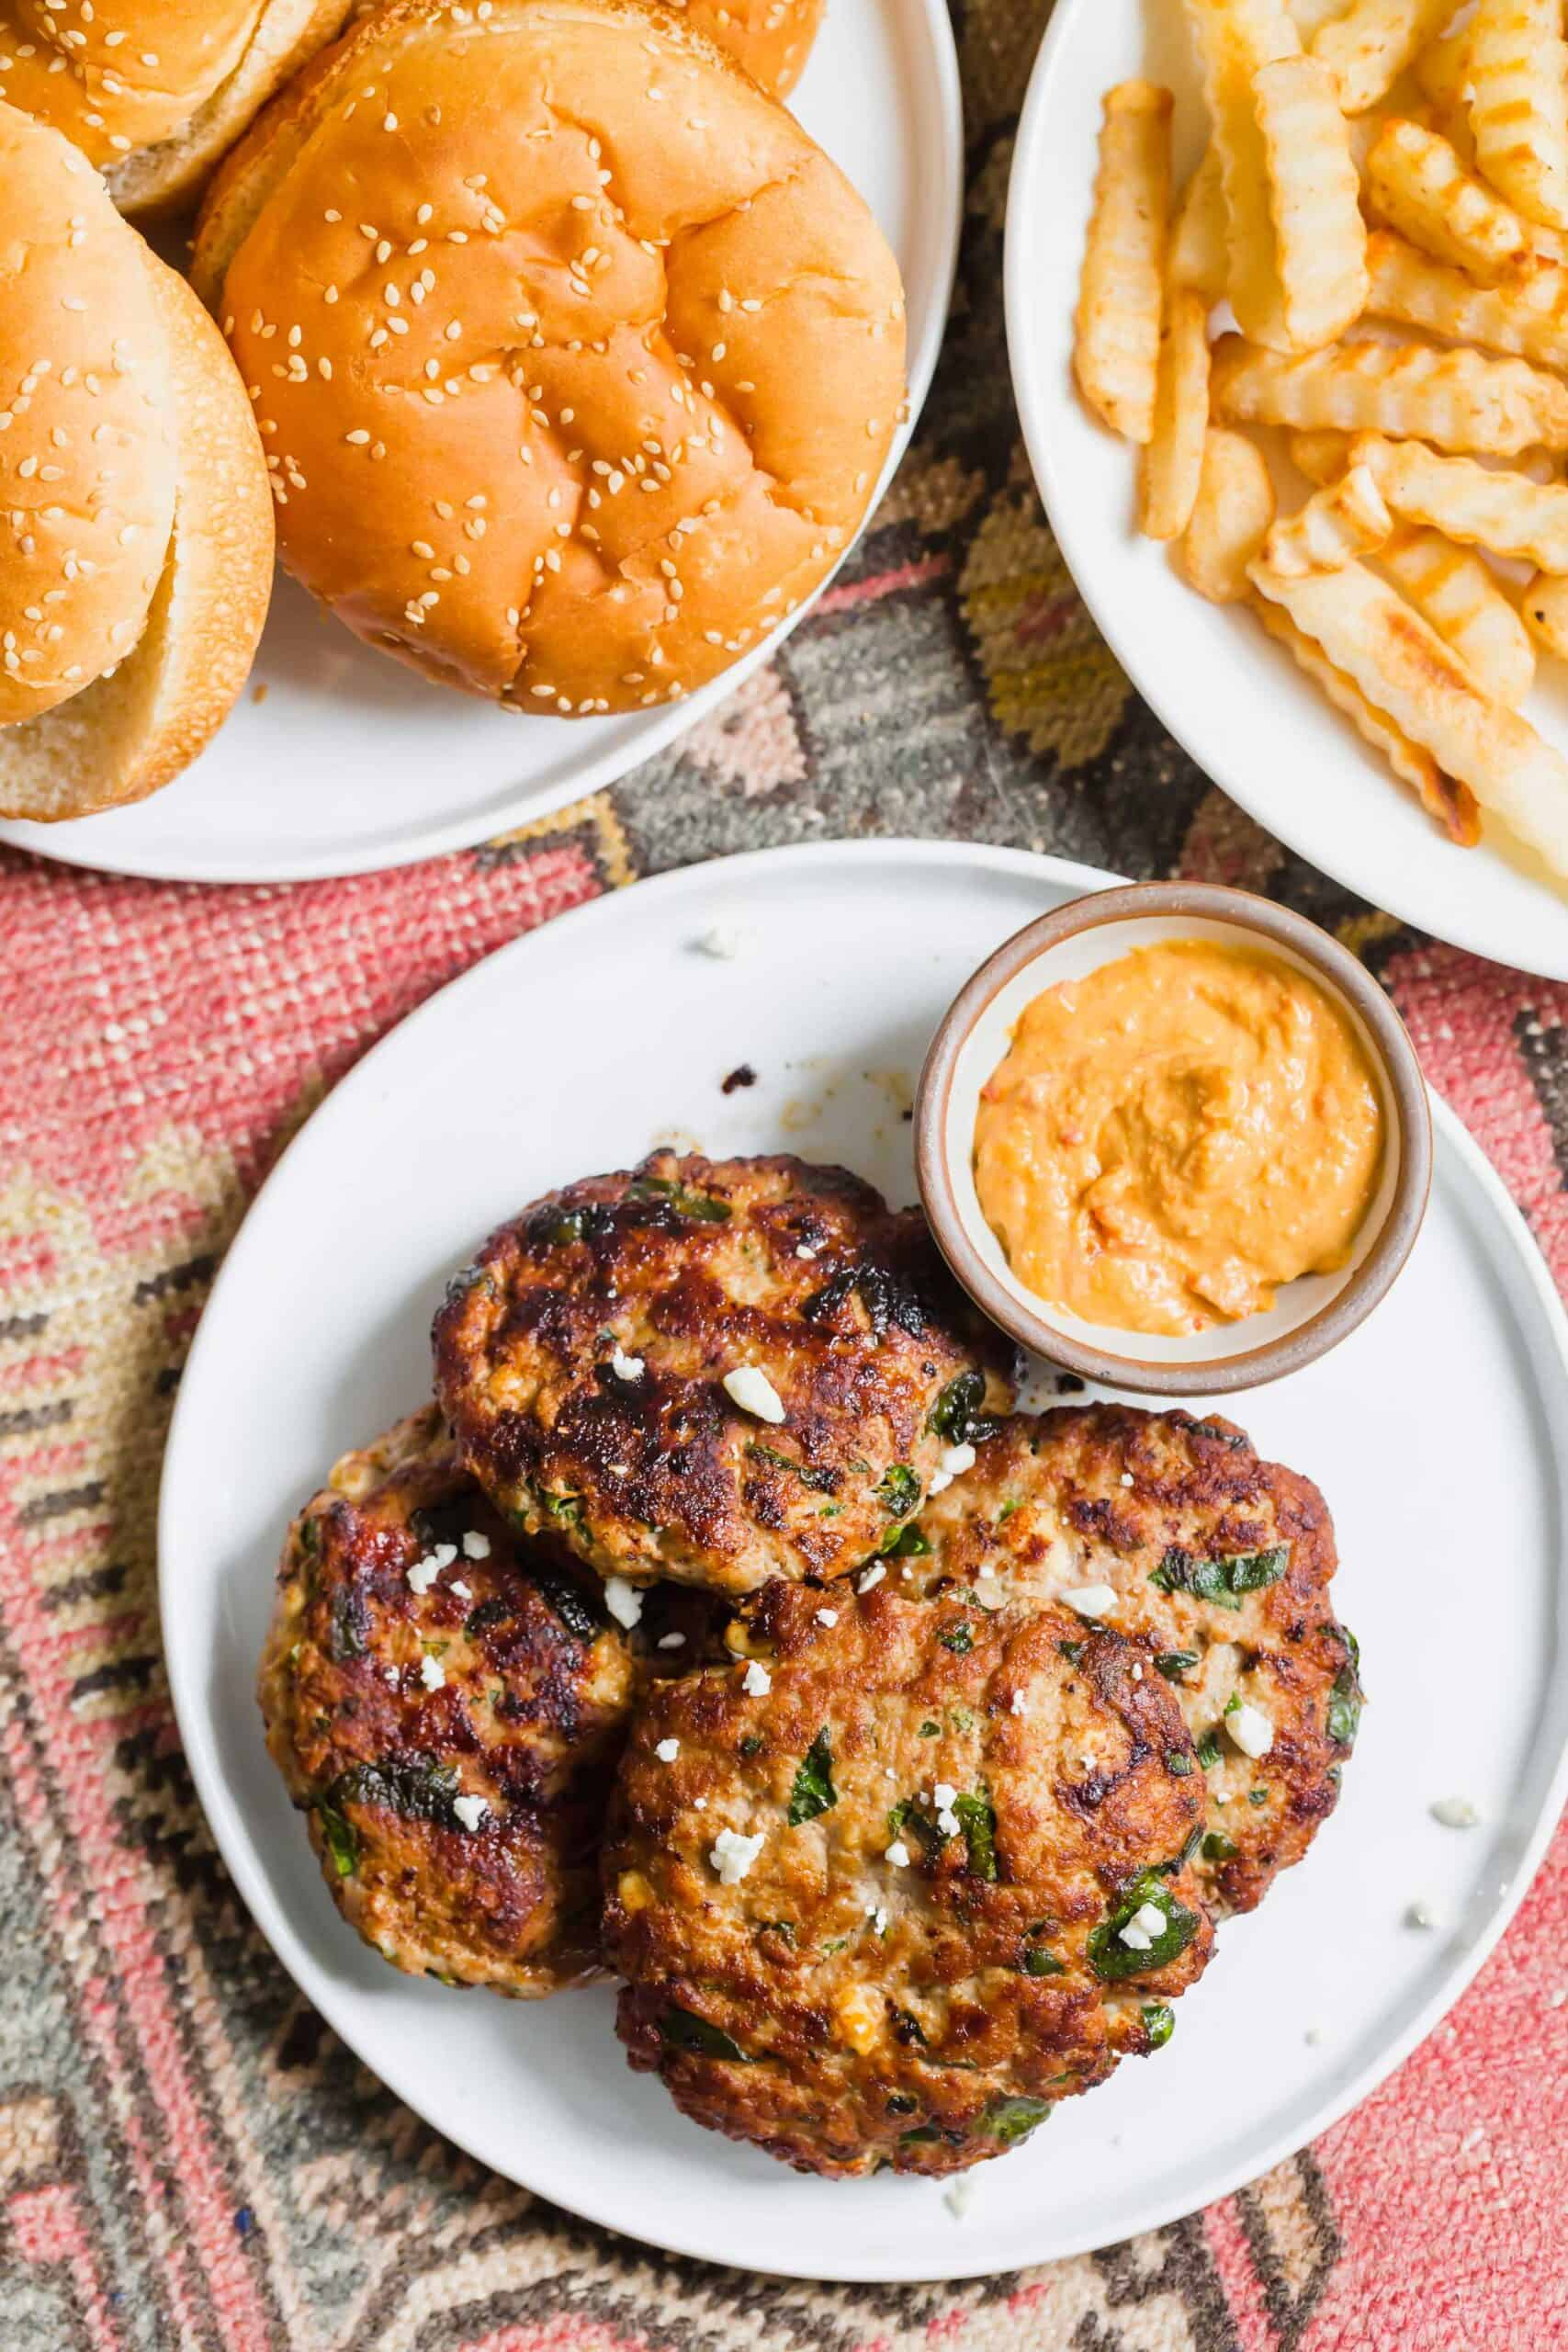 Turkey spinach and feta burgers are an excellent way to use up ground turkey in a flavorful Mediterranean-style burger! These egg-free burger patties are the perfect grilling season recipe!